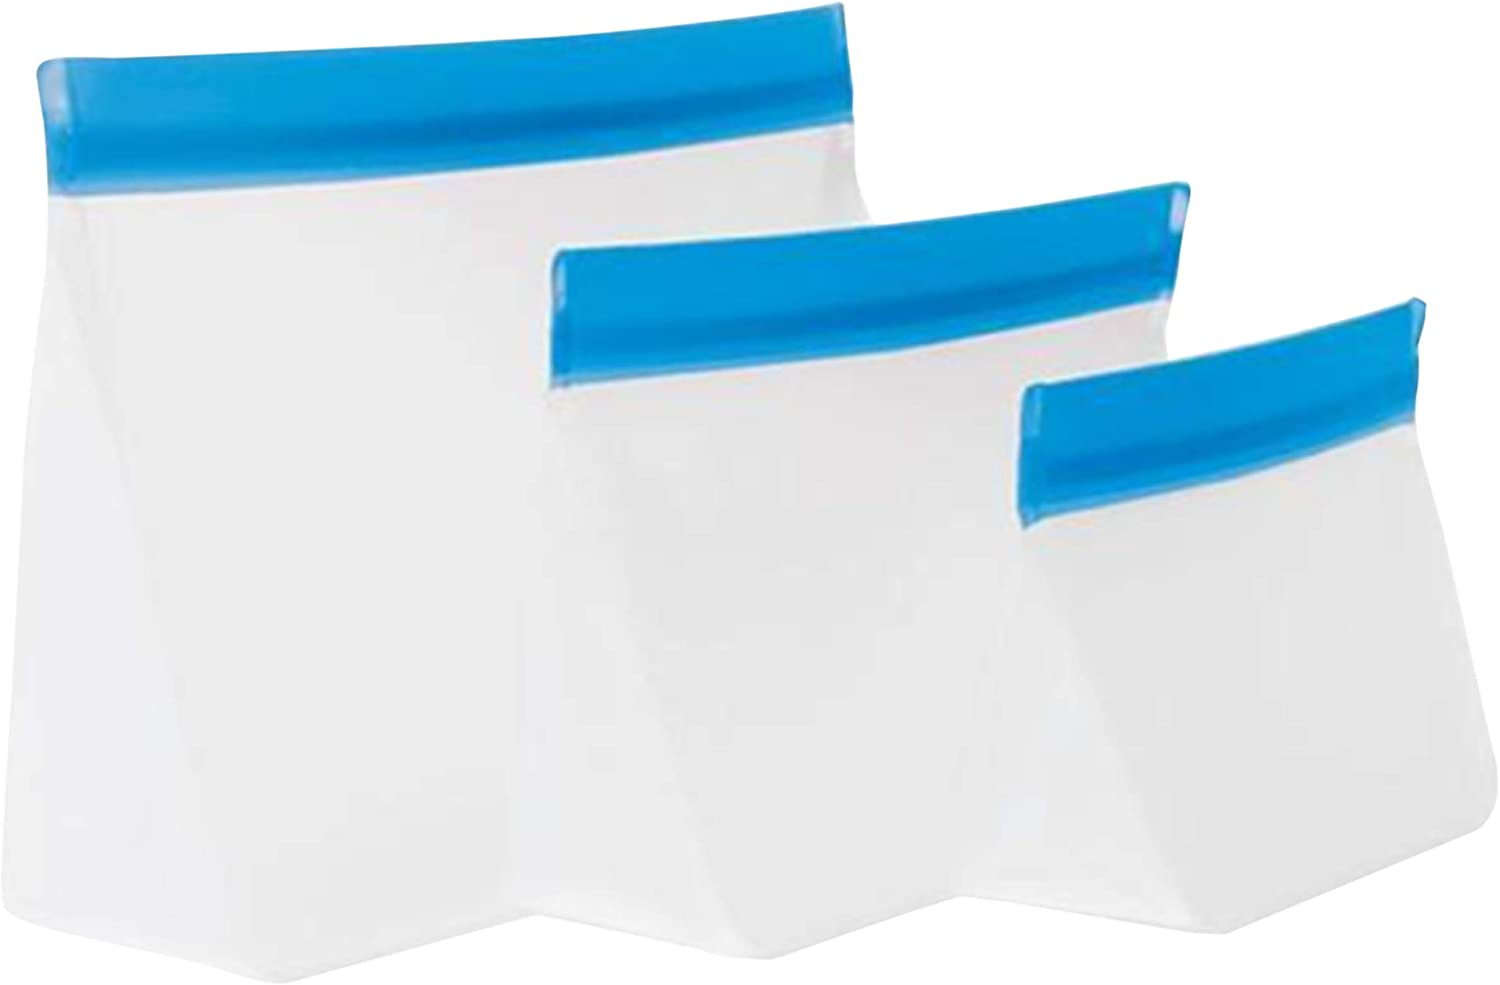 mumi Reusable Zip Up Bags | Food Storage Bags, Travel Organizer | Airtight and Leak-proof Seal | Expandable Base | Set of 3 Reusable Bags (10 x 7, 8 x 5, 6 x 4 inches) (Blue)